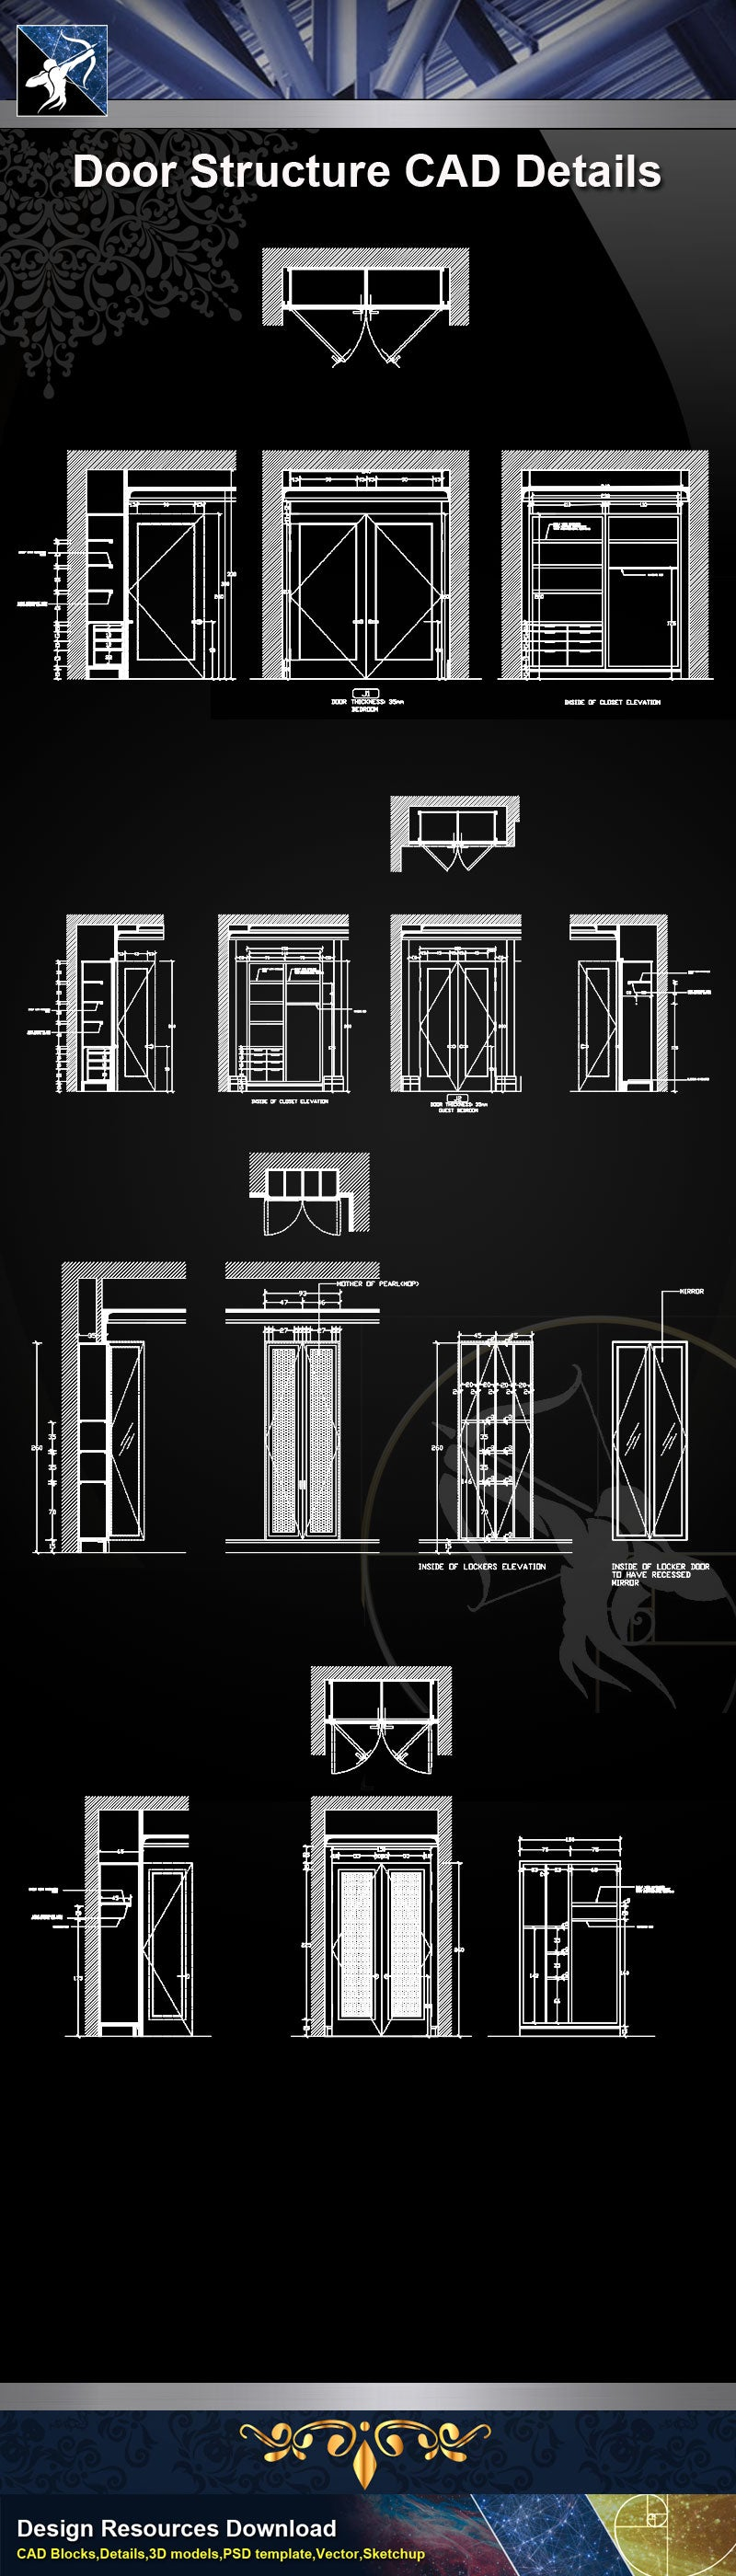 【Door Details】Door Structure Details-Door Details, Door CAD Details,Door plan,Door elevation-Architecture Details,CAD Details,Construction Details and Drawings